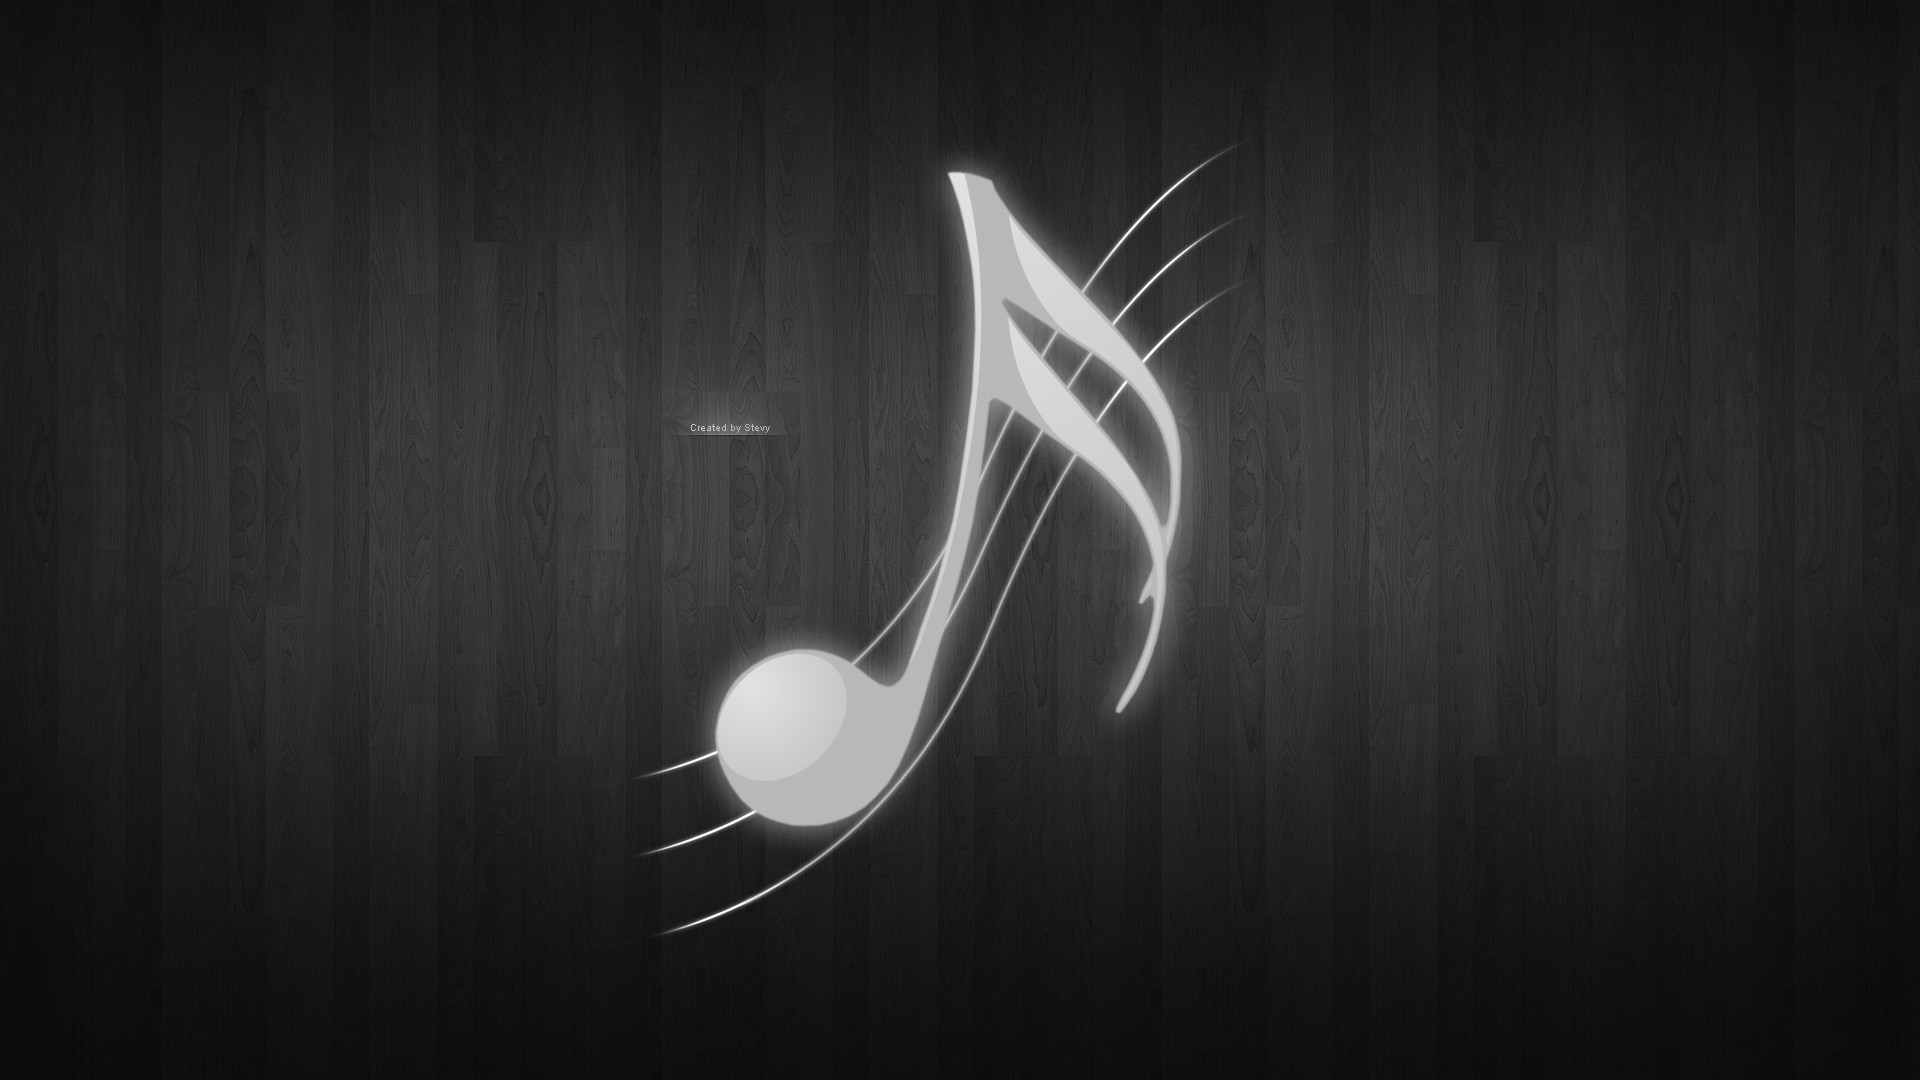 Tag: Full HD Musical Wallpapers, Backgrounds and Pictures for Free, Merlin  Staub